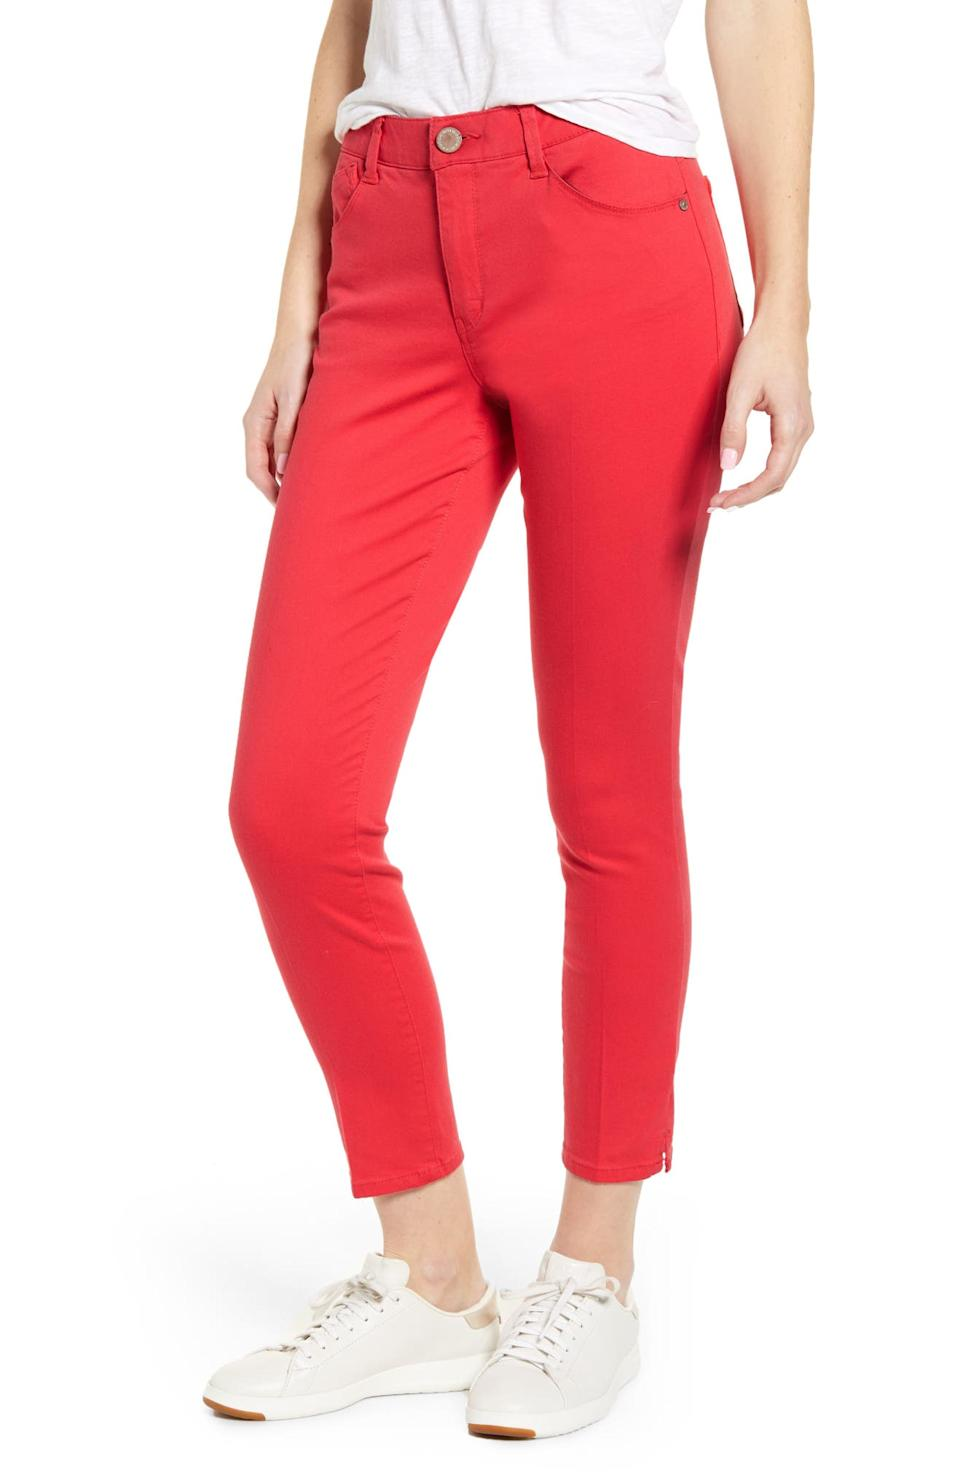 Save 40% on the Wit & Wisdom Ab-Solution High Waist Ankle Skinny Pants. Image via Nordstrom.